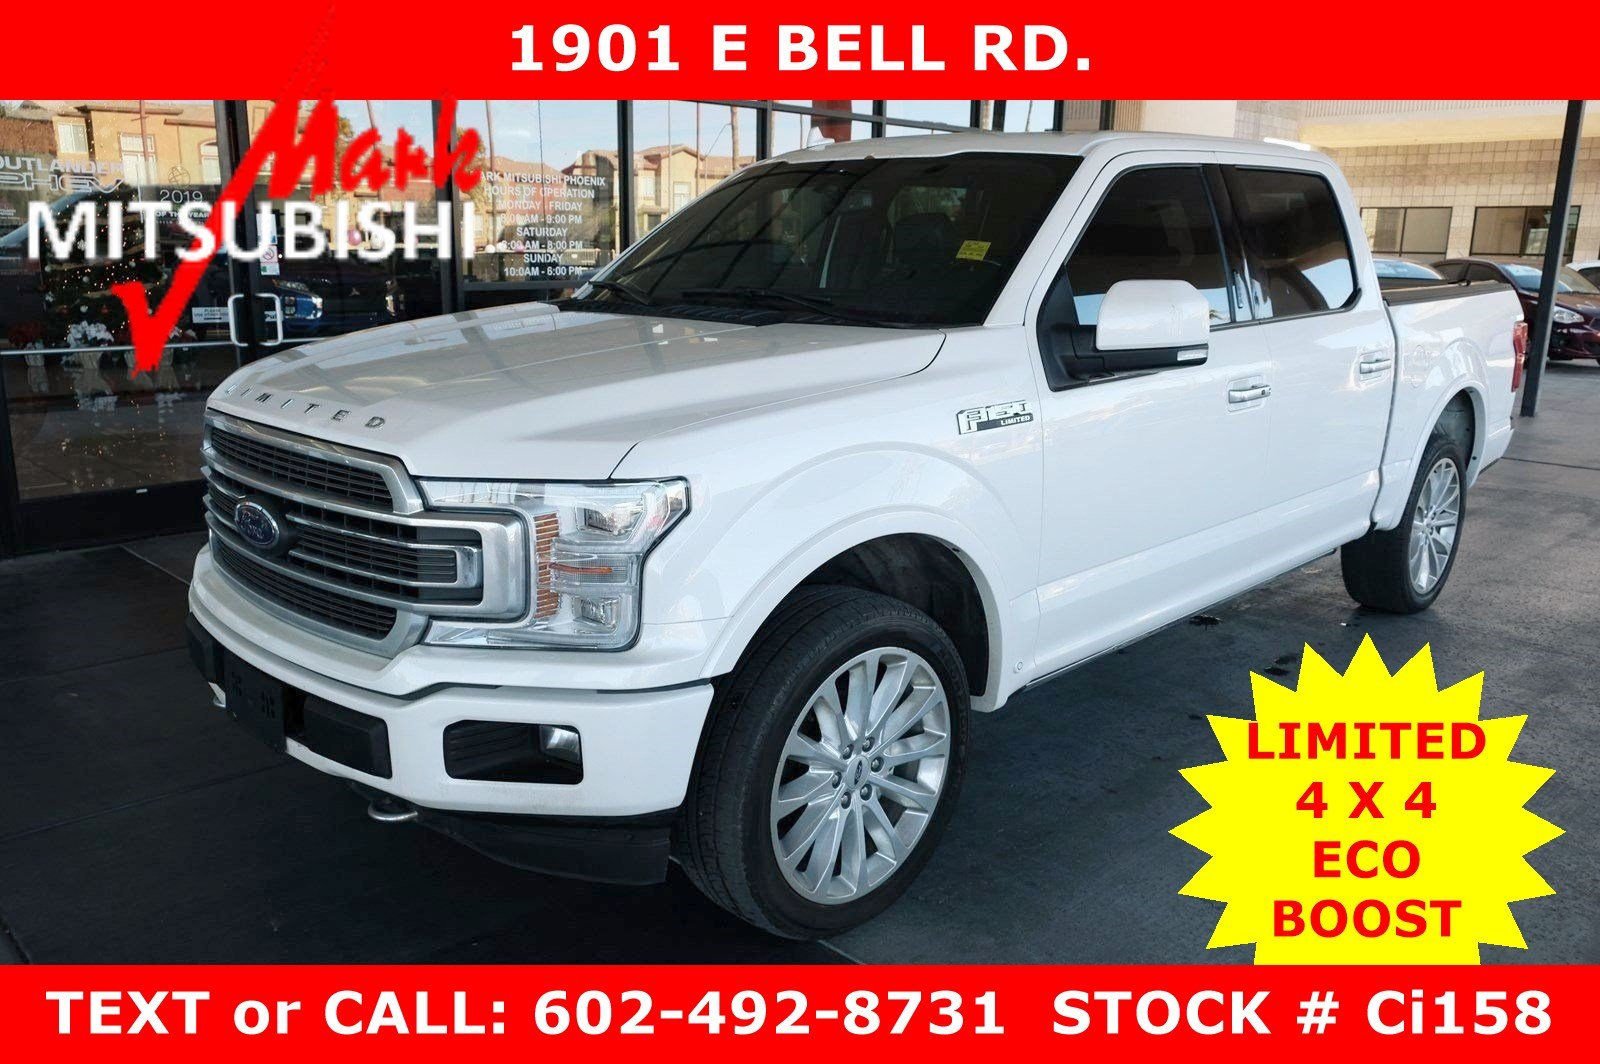 Pre-Owned 2018 Ford F-150 Limited 4X4 ECO